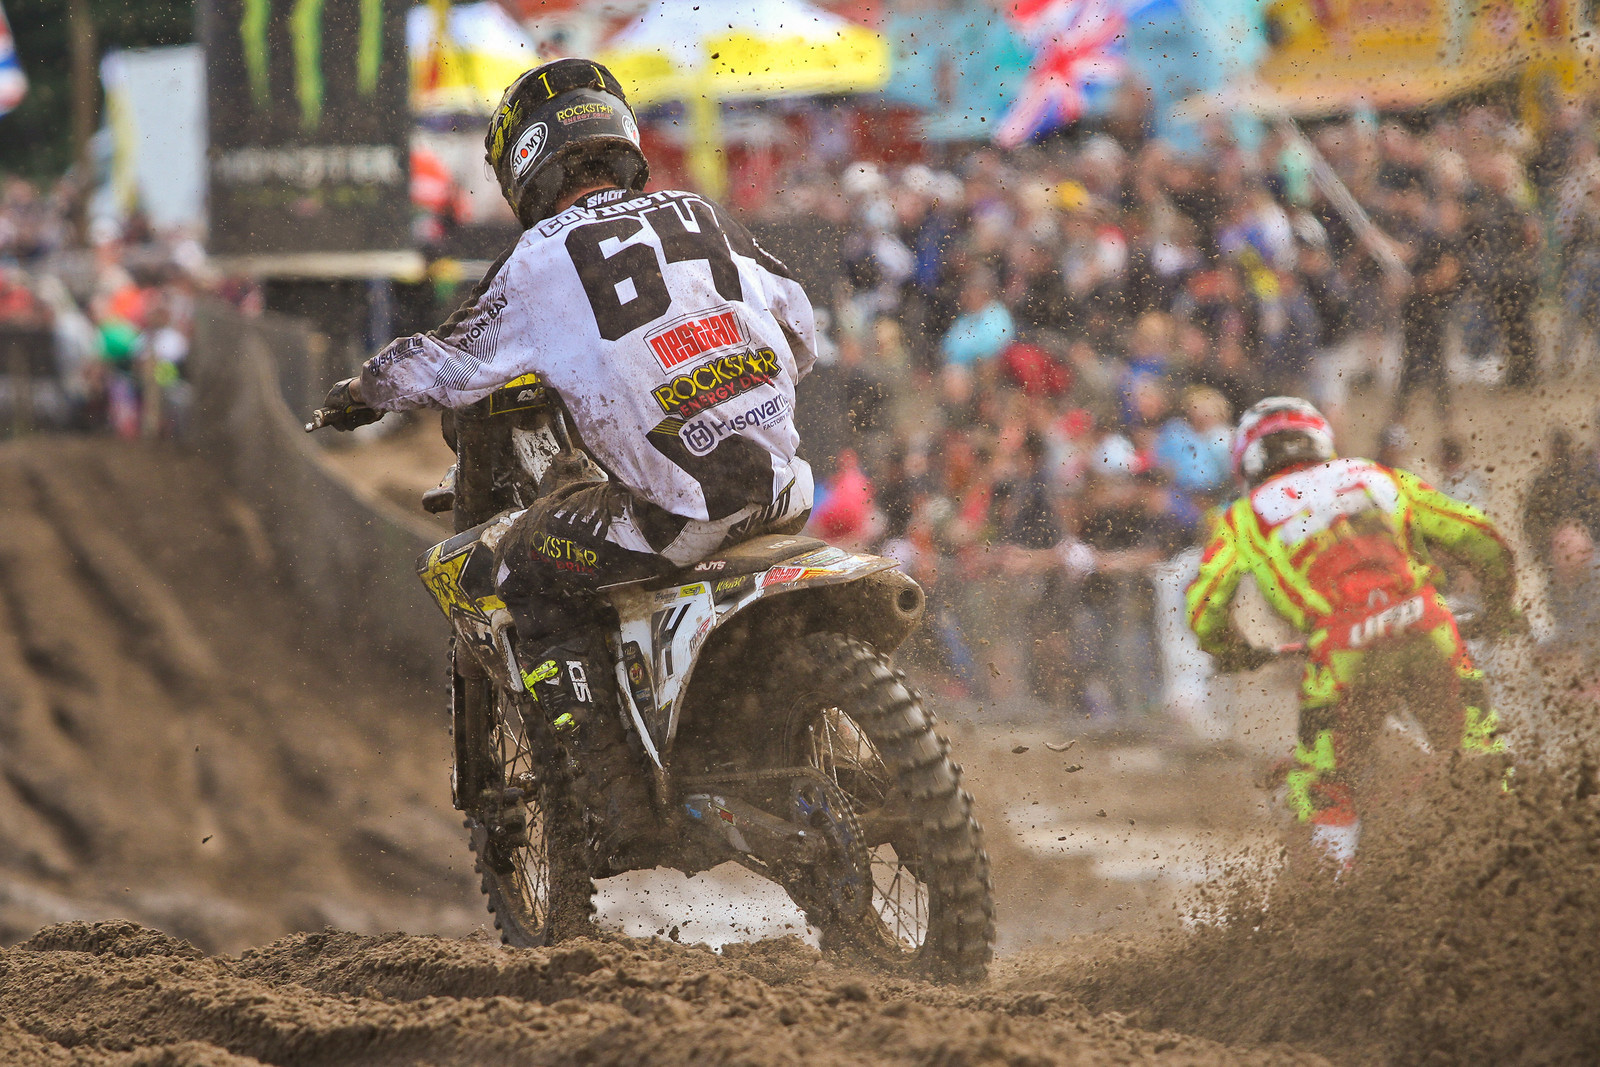 Thomas Covington digging in the sand during this year's GP season.